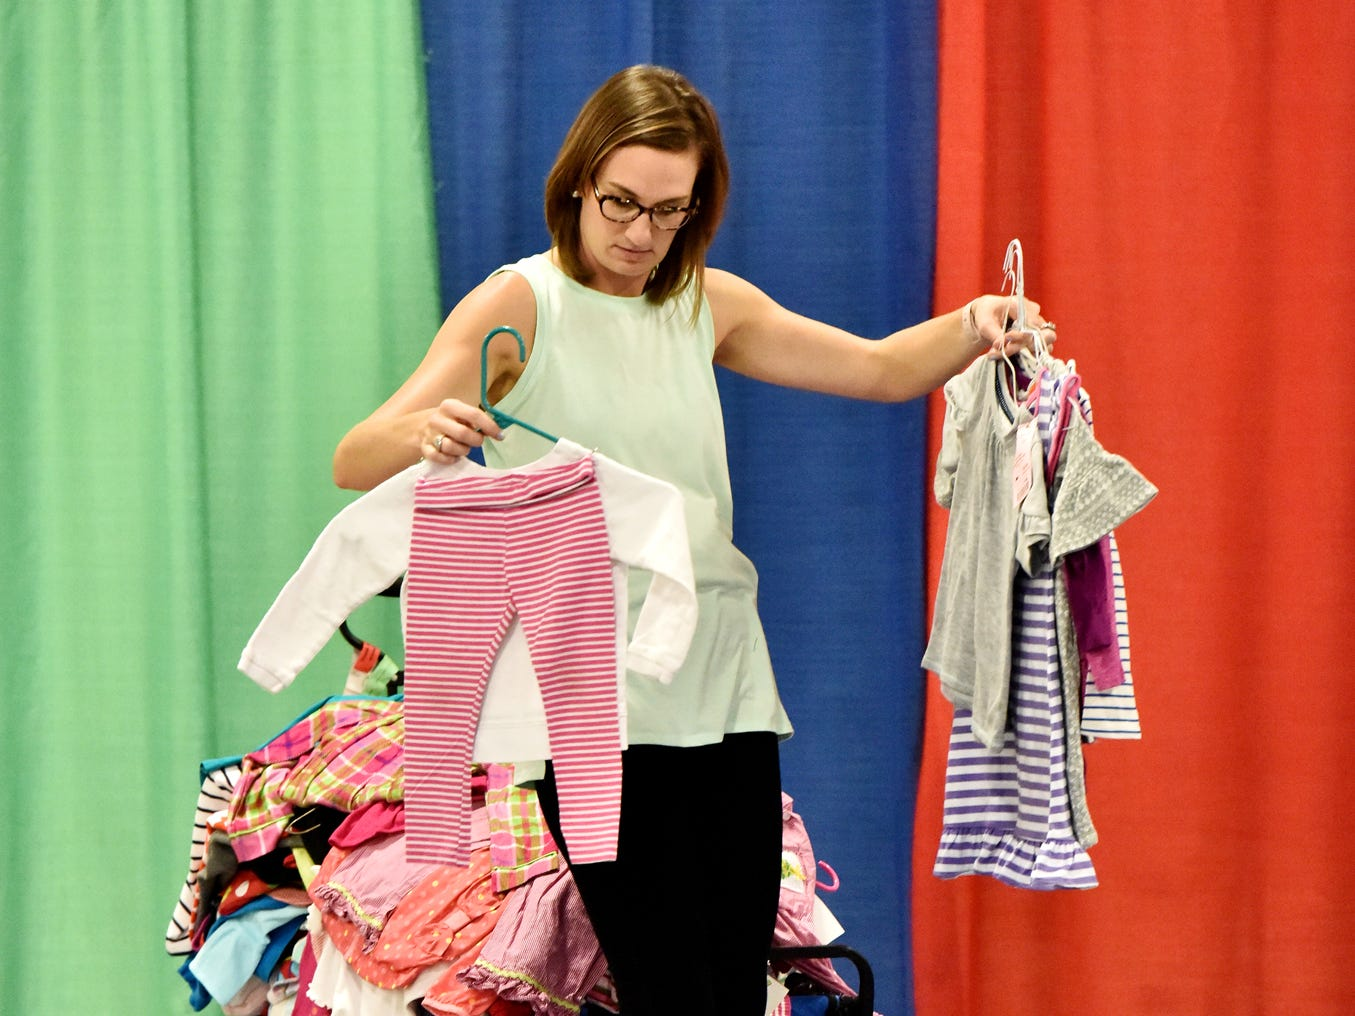 Ashley Wiggins separates clothes during the Switch-A-Roos children's consignment event at the TD Convention Center in Greenville on Wednesday afternoon, August 8, 2018.